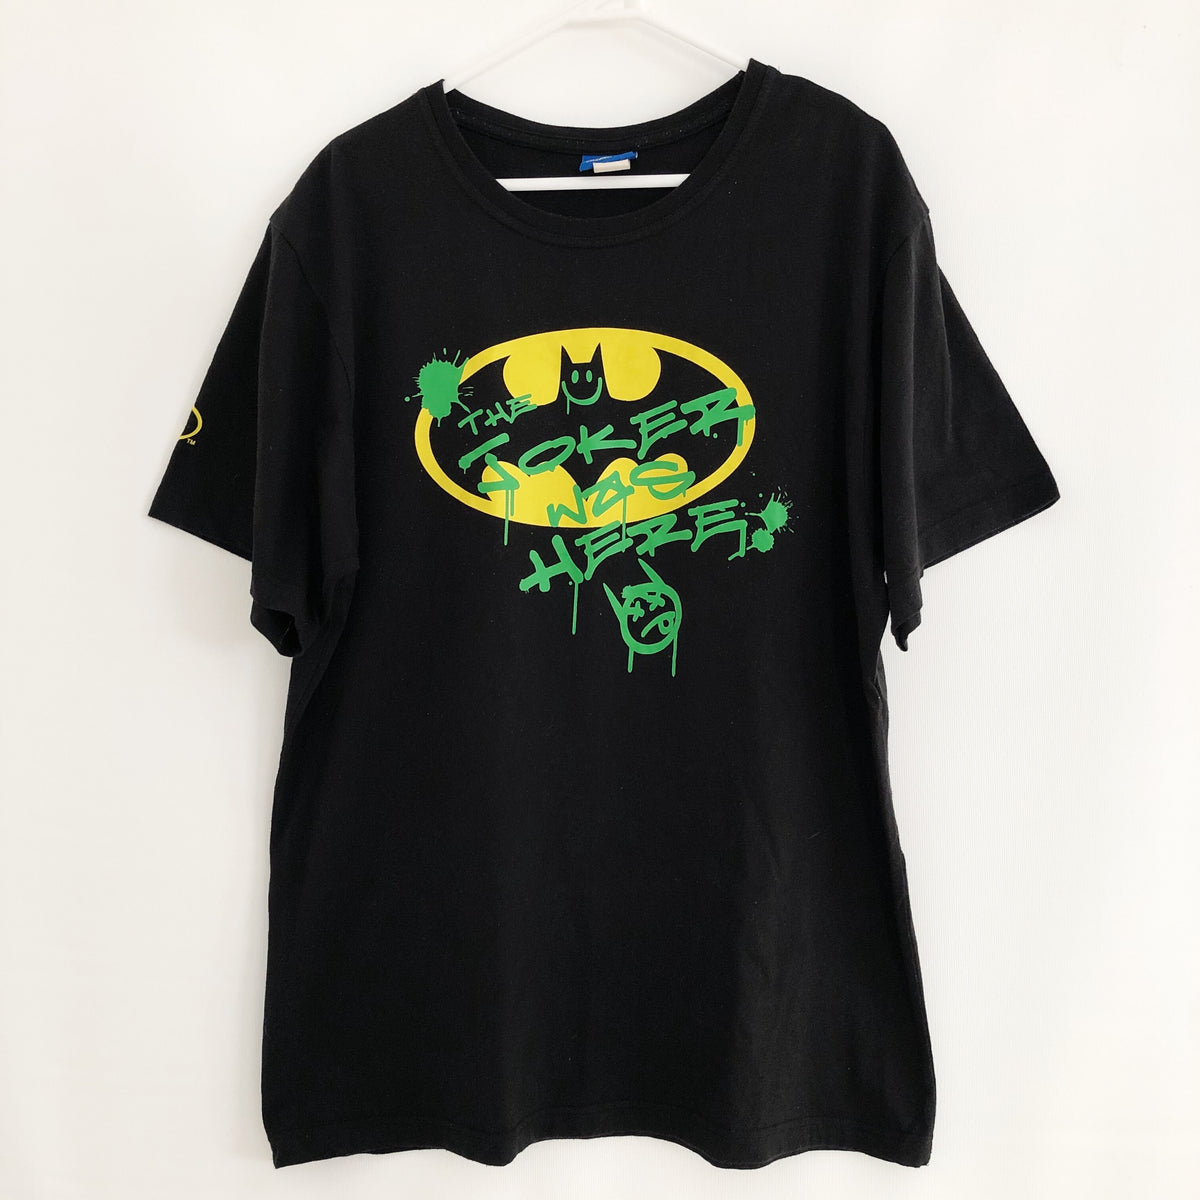 The Joker Was Here Batman Graffiti T-Shirt Mens XL